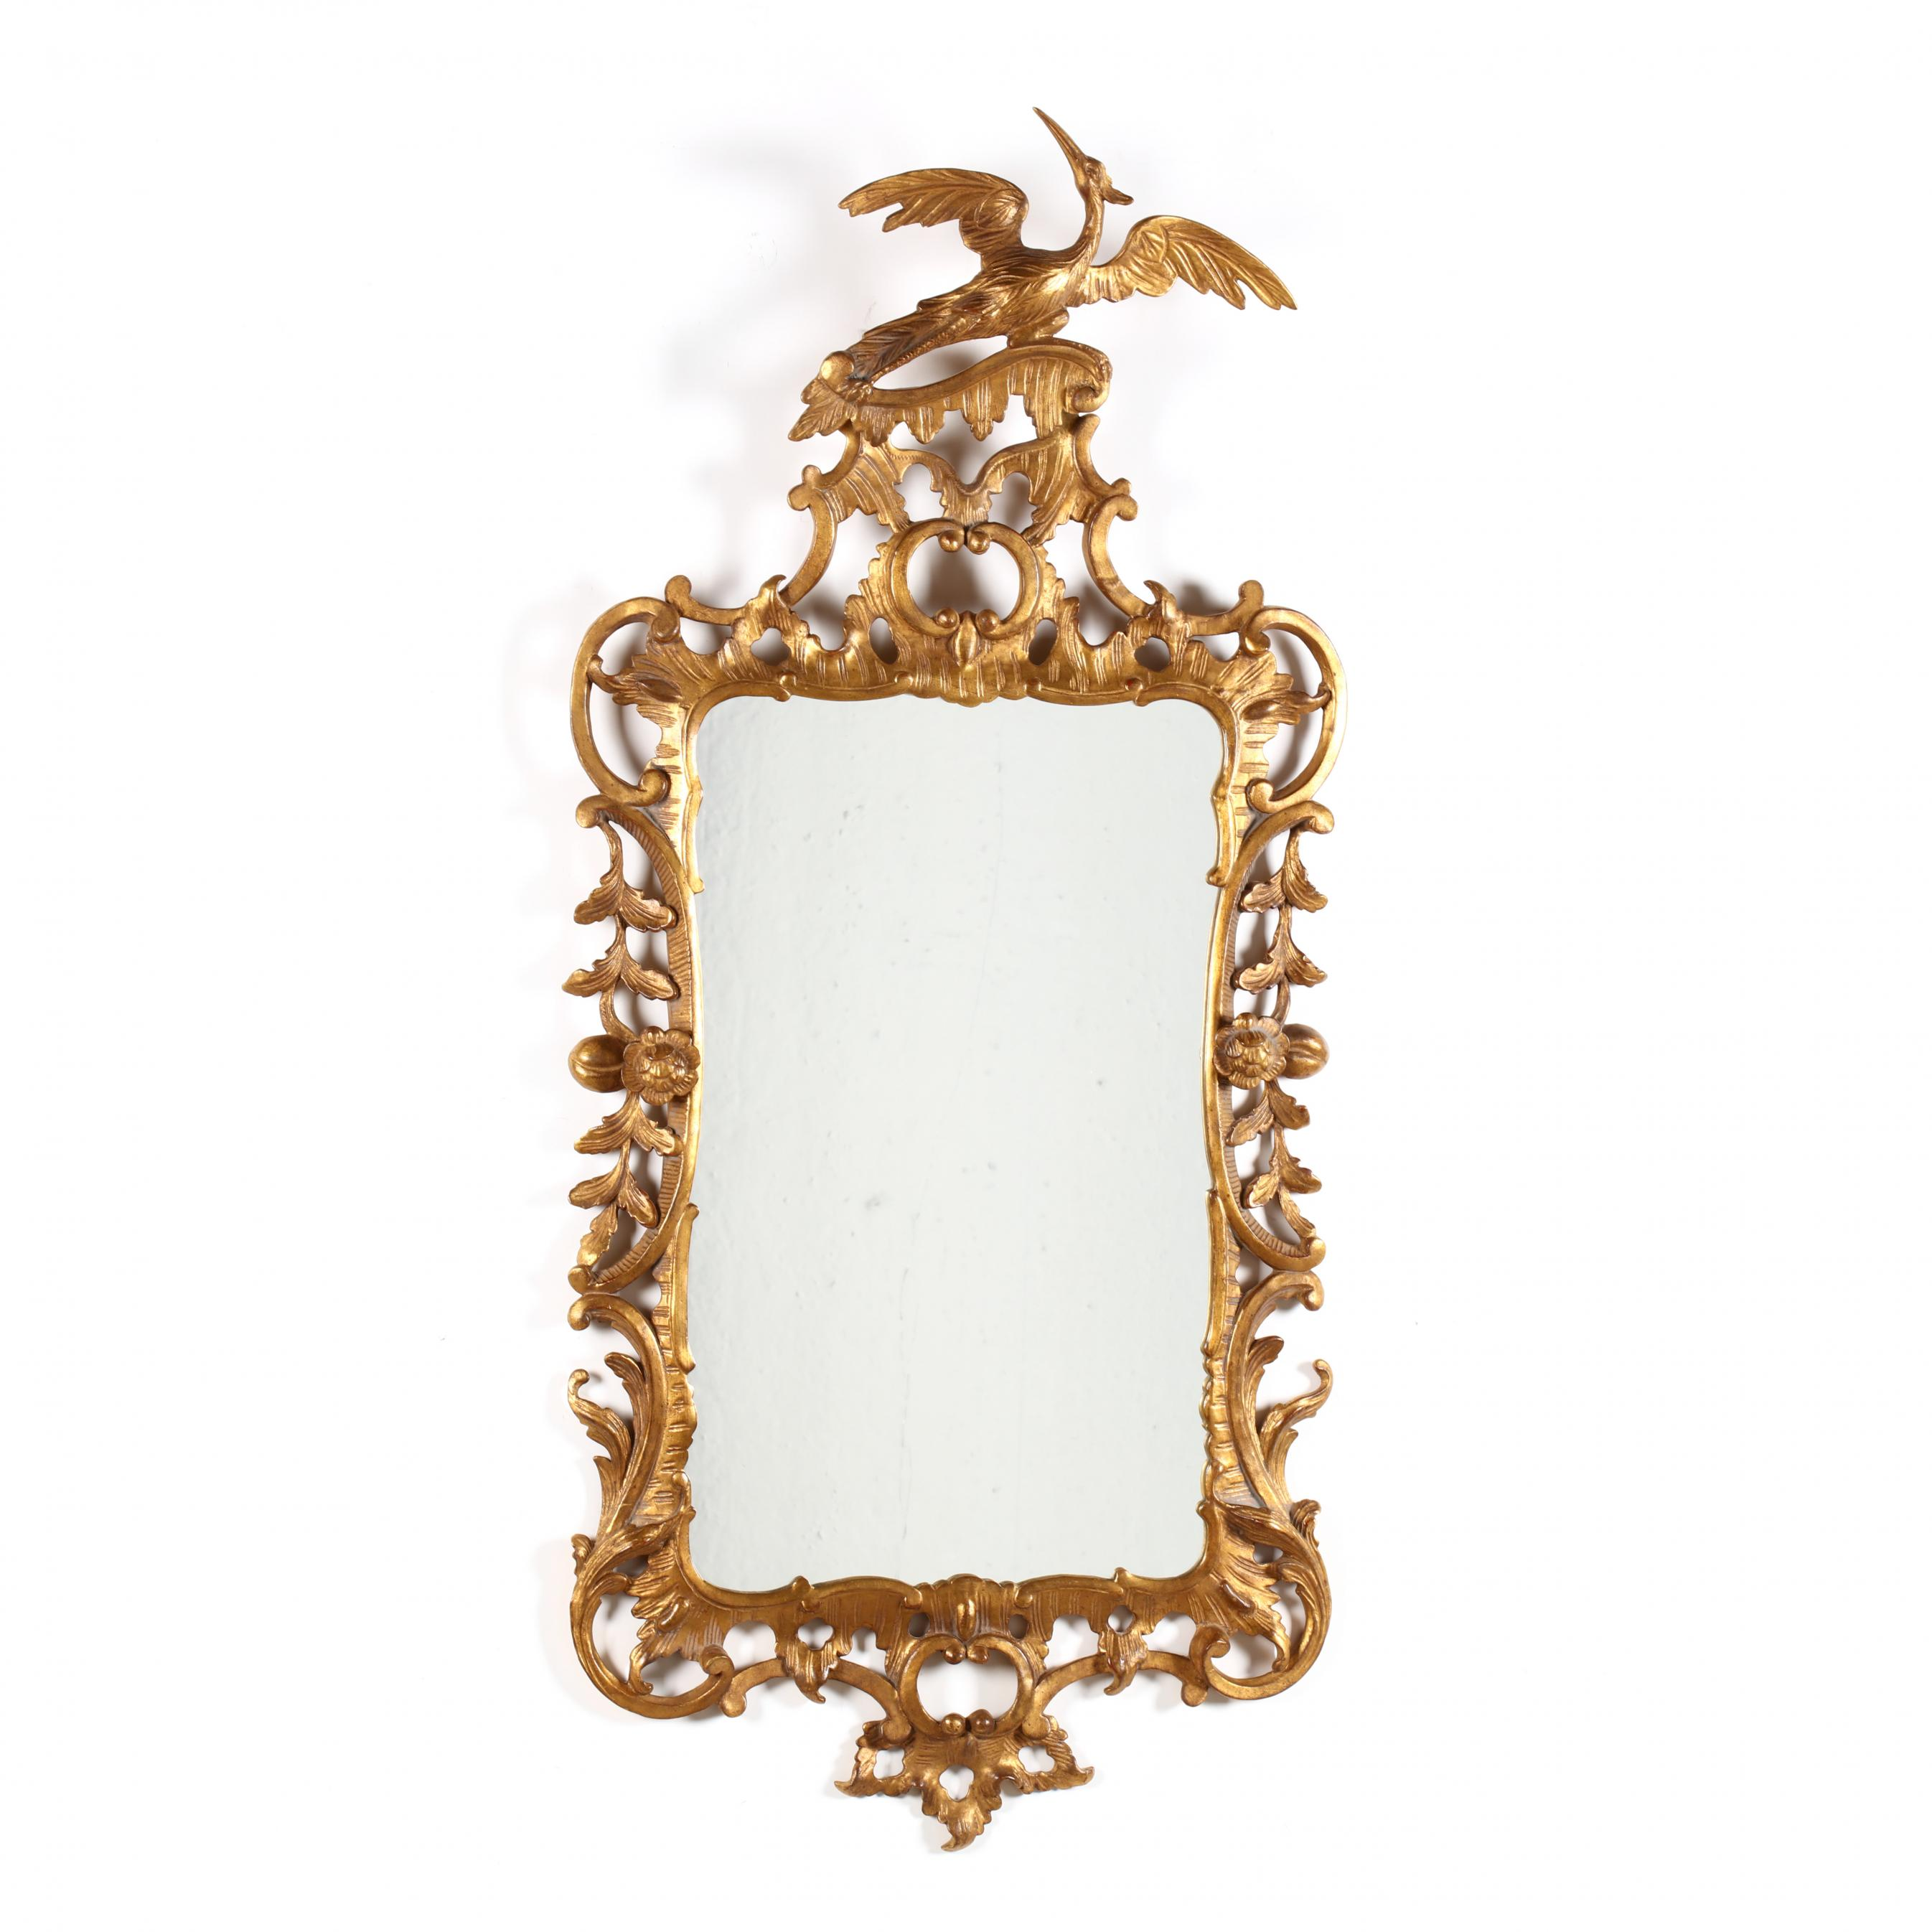 english-chippendale-style-gilt-mirror